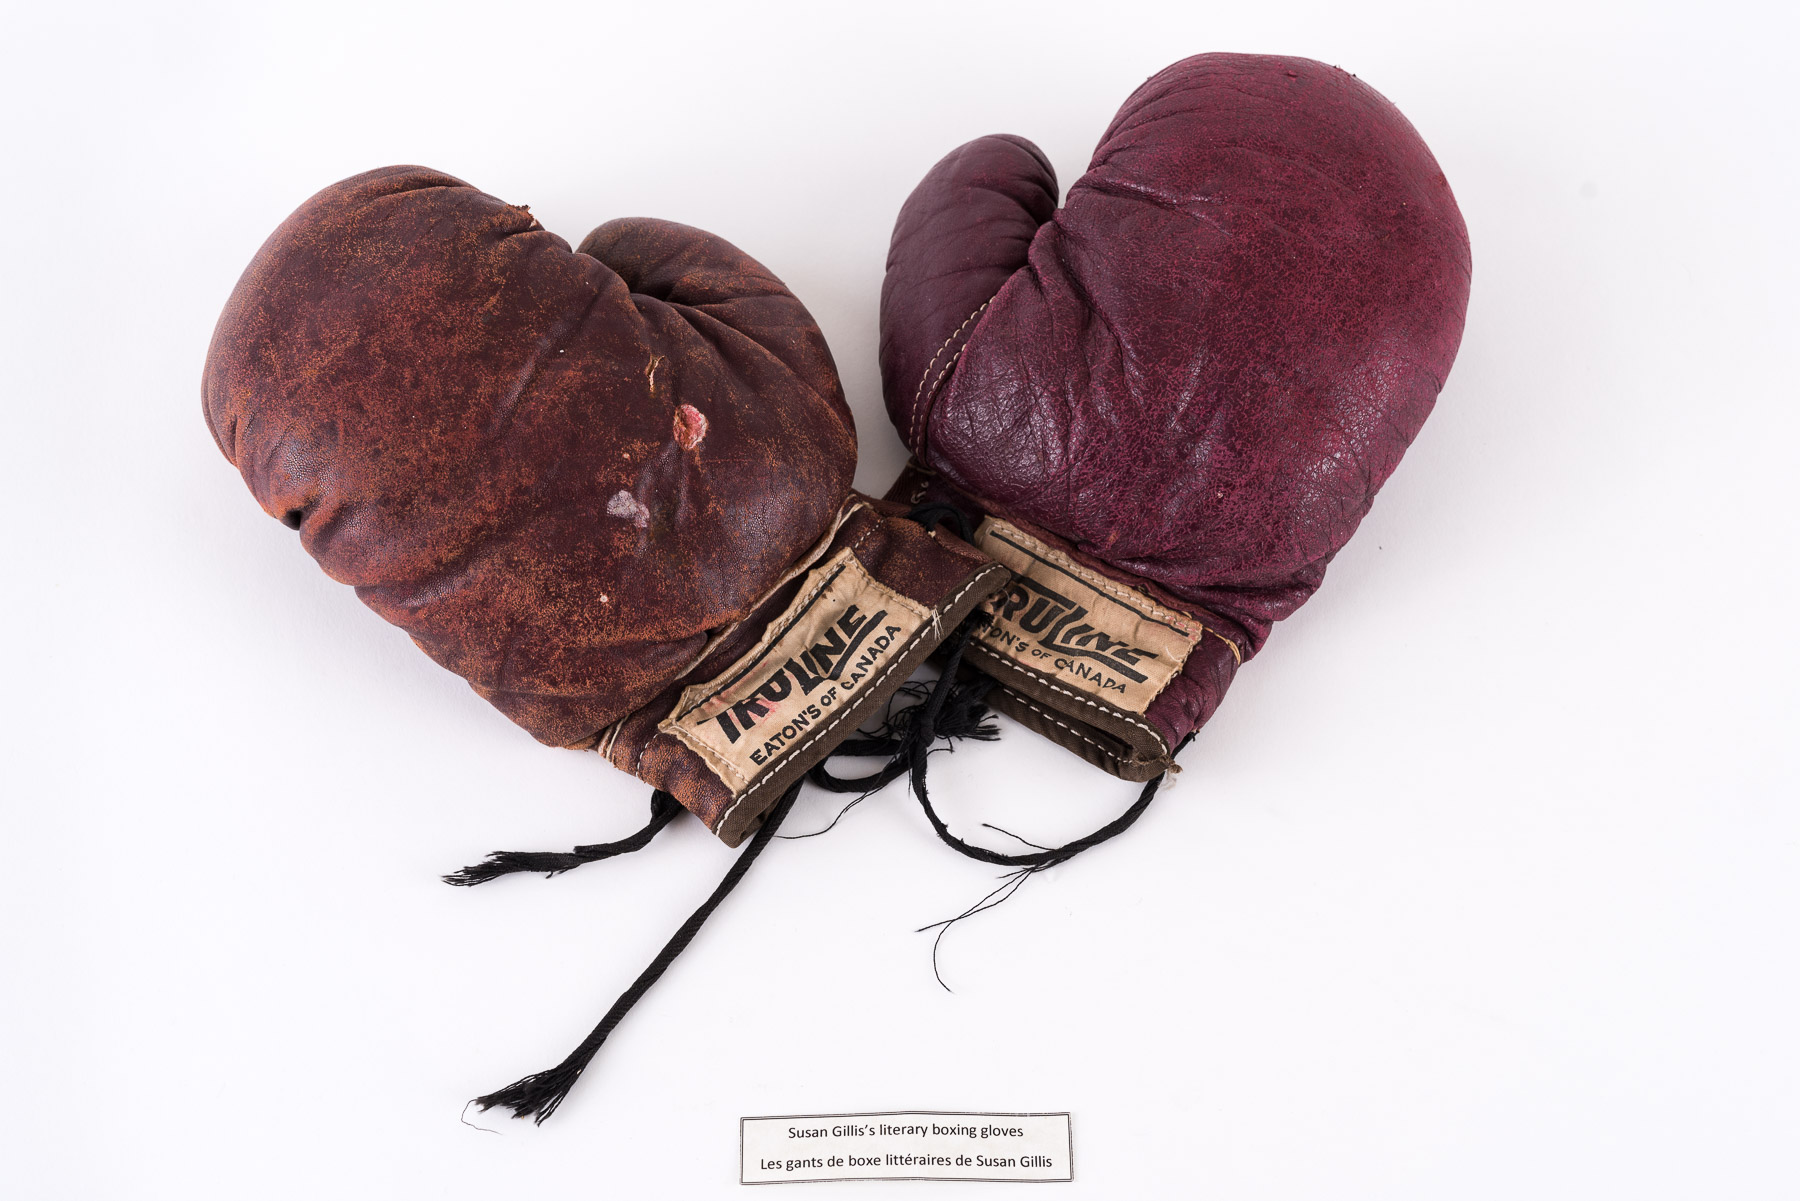 Susan Gillis's literary boxing gloves